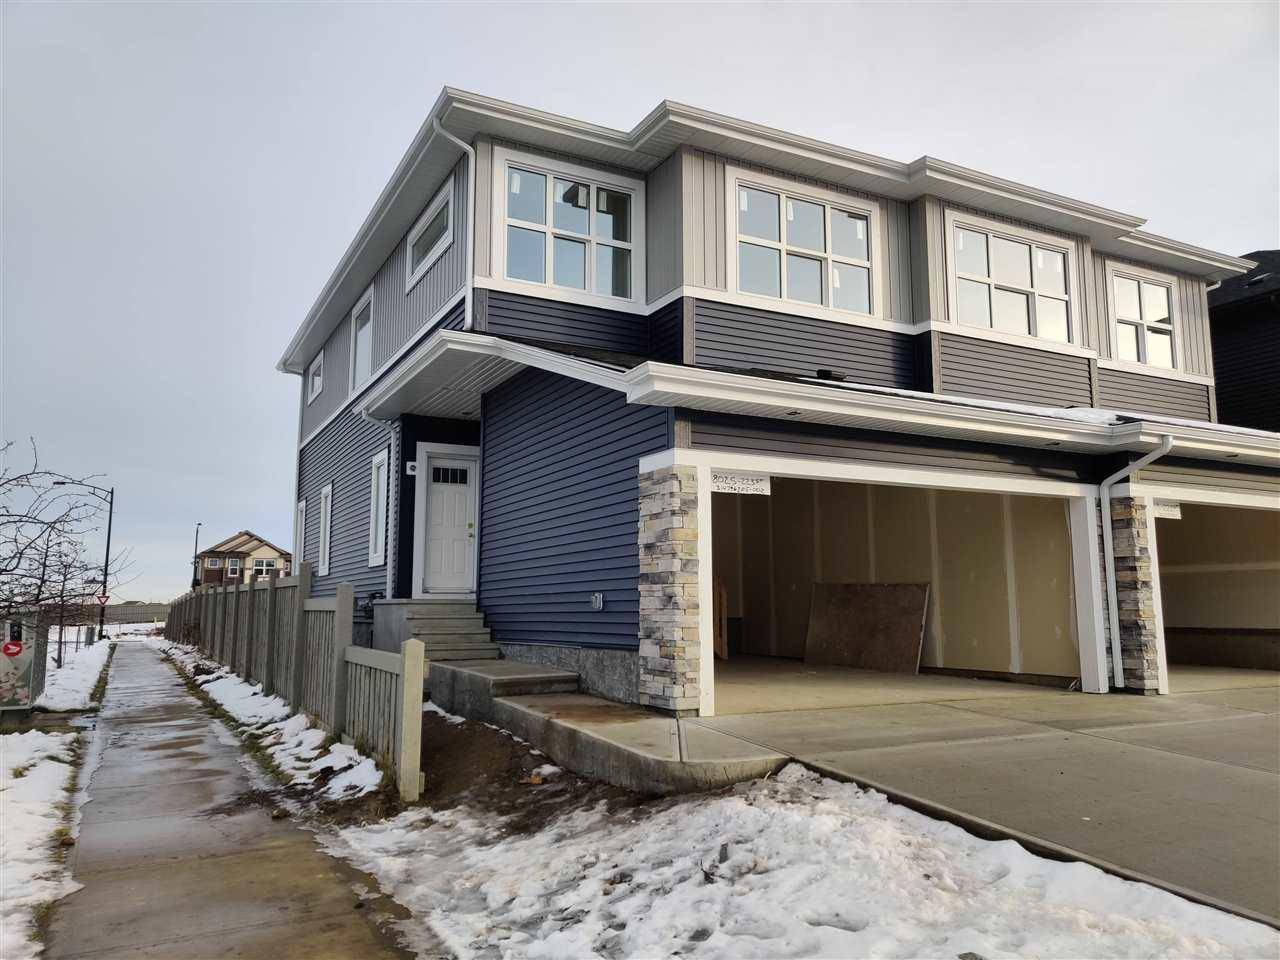 Townhouse for sale at 8025 223 St Nw Edmonton Alberta - MLS: E4176715